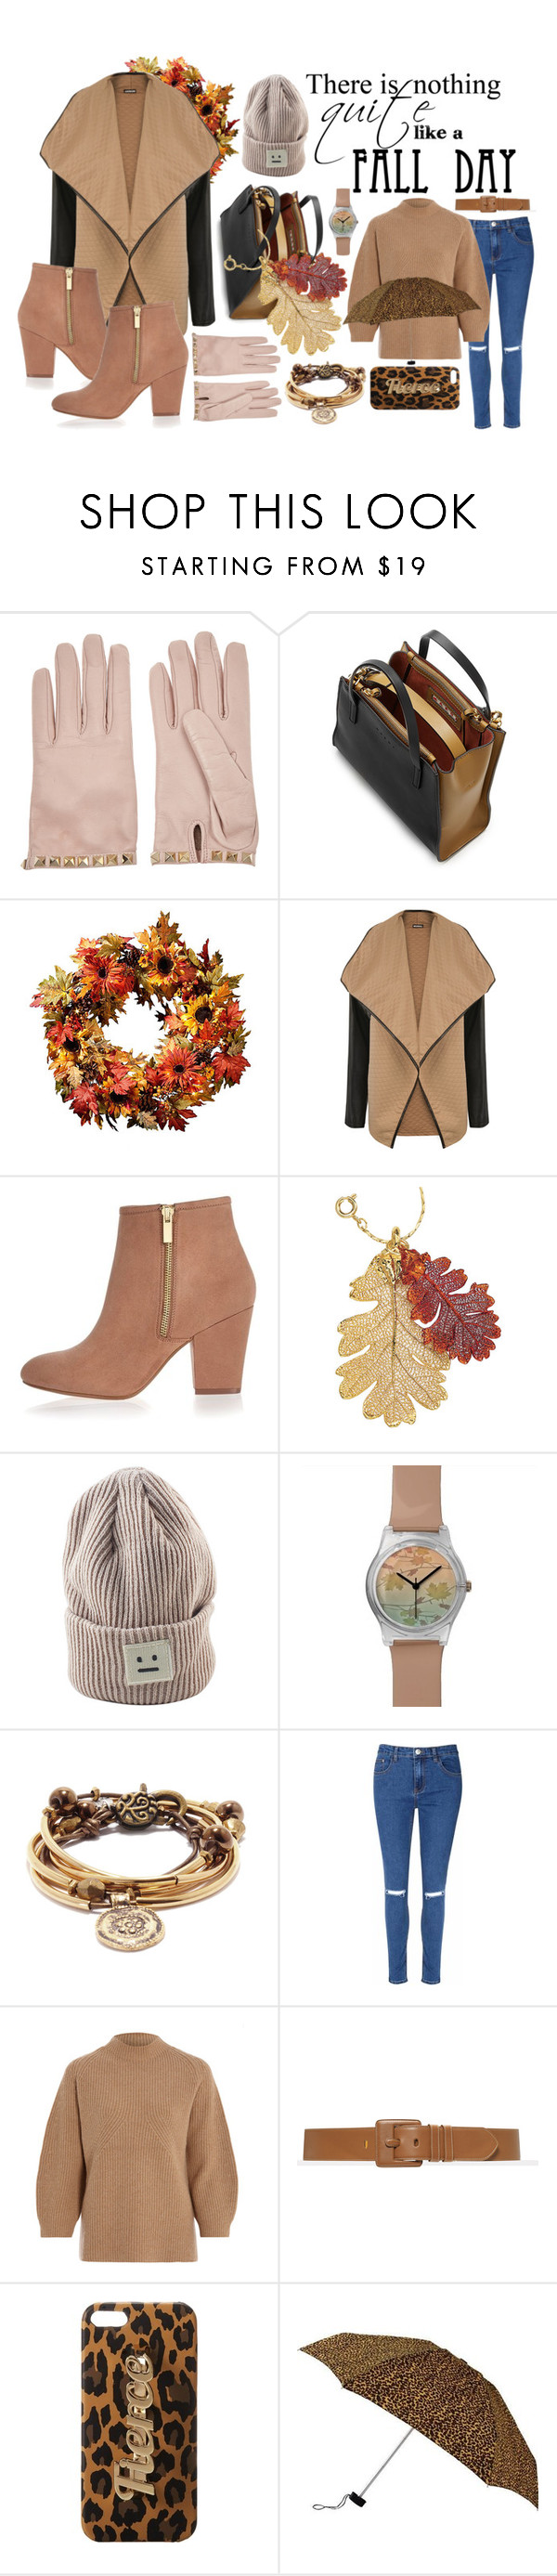 """""""Missing those autumn days.   #fall #autumn"""" by vvoskolup ❤ liked on Polyvore featuring Valentino, Marni, WearAll, River Island, Natures Jewelry, Glamorous, 3.1 Phillip Lim, Steve Madden, Leighton and women's clothing"""